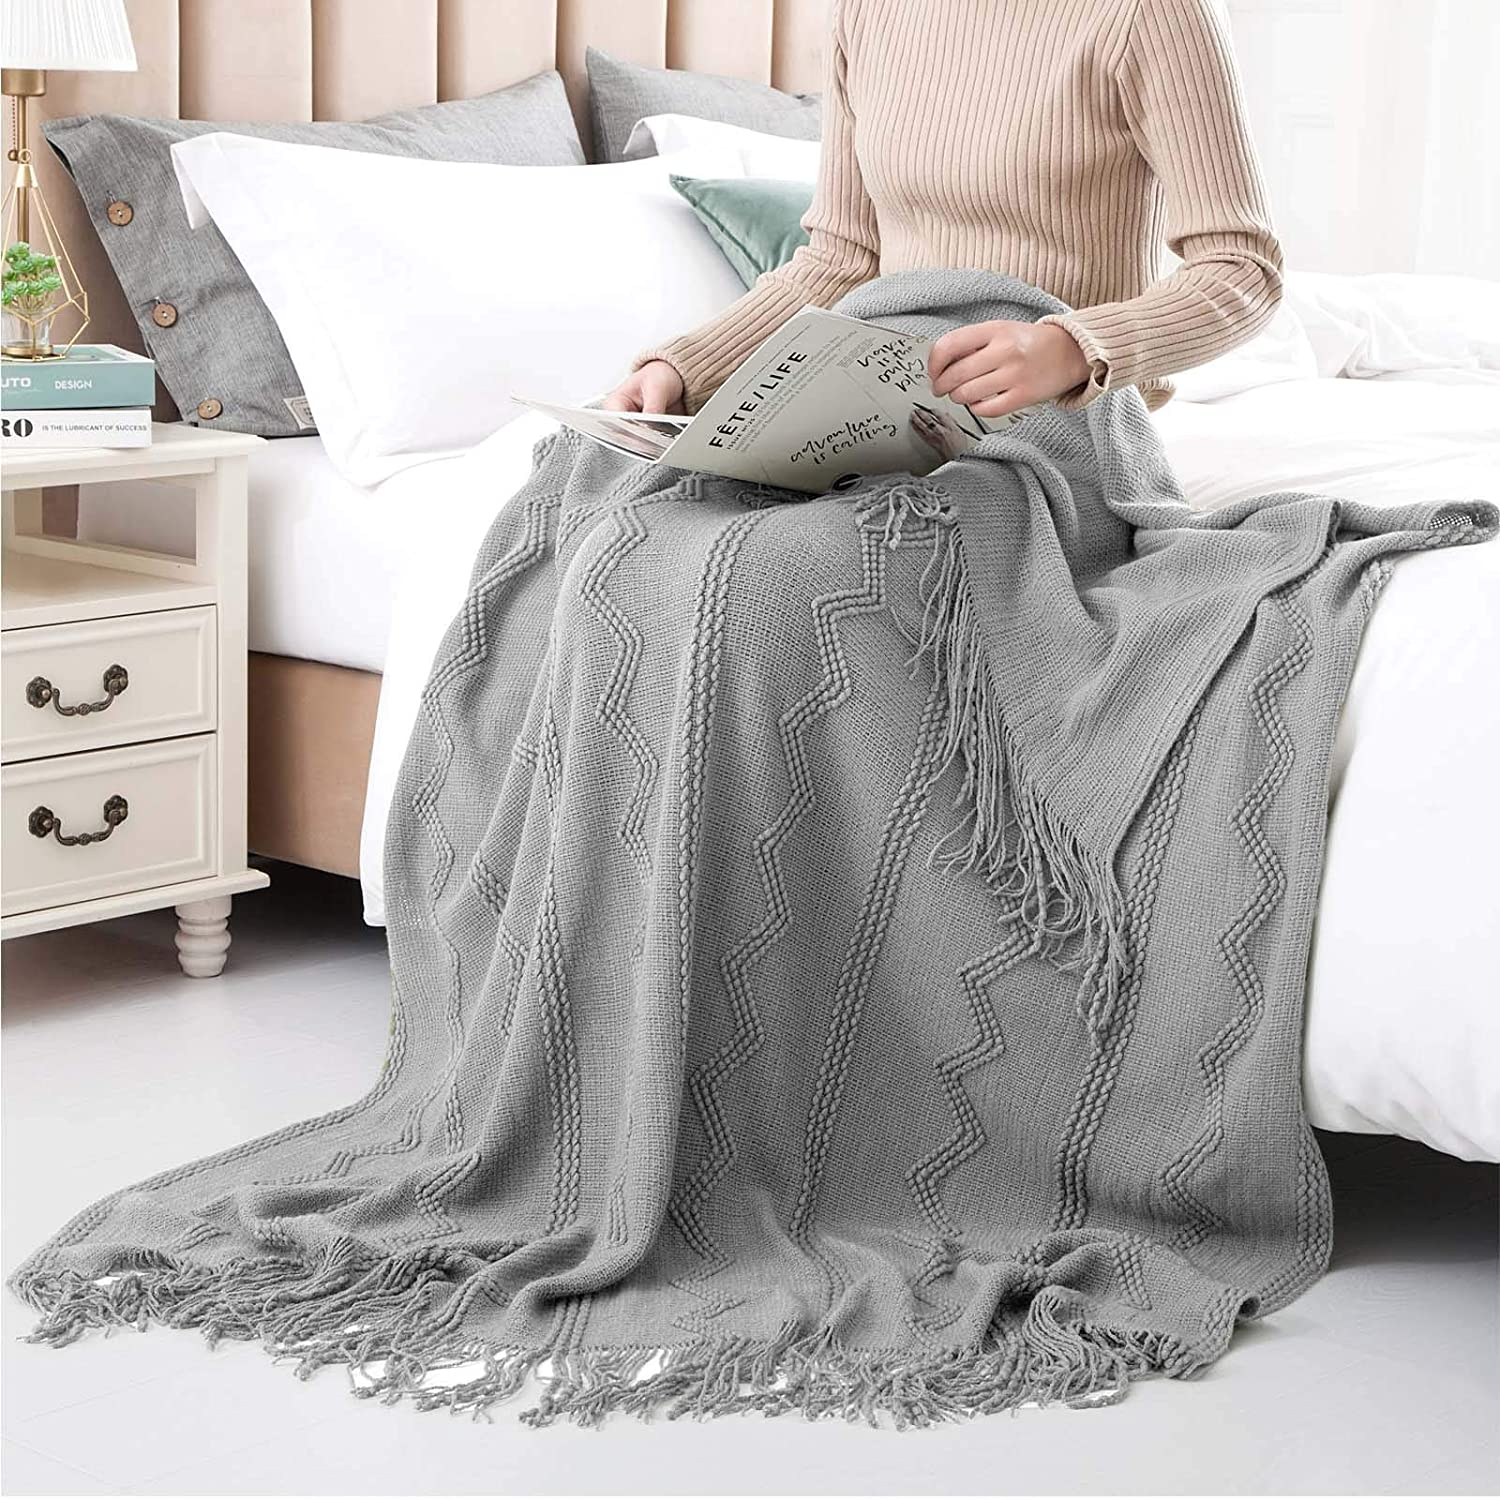 ZJGKNM 100% Acrylic Knit Throw Decorative Soft Animer and price Large-scale sale revision Blanket Textured